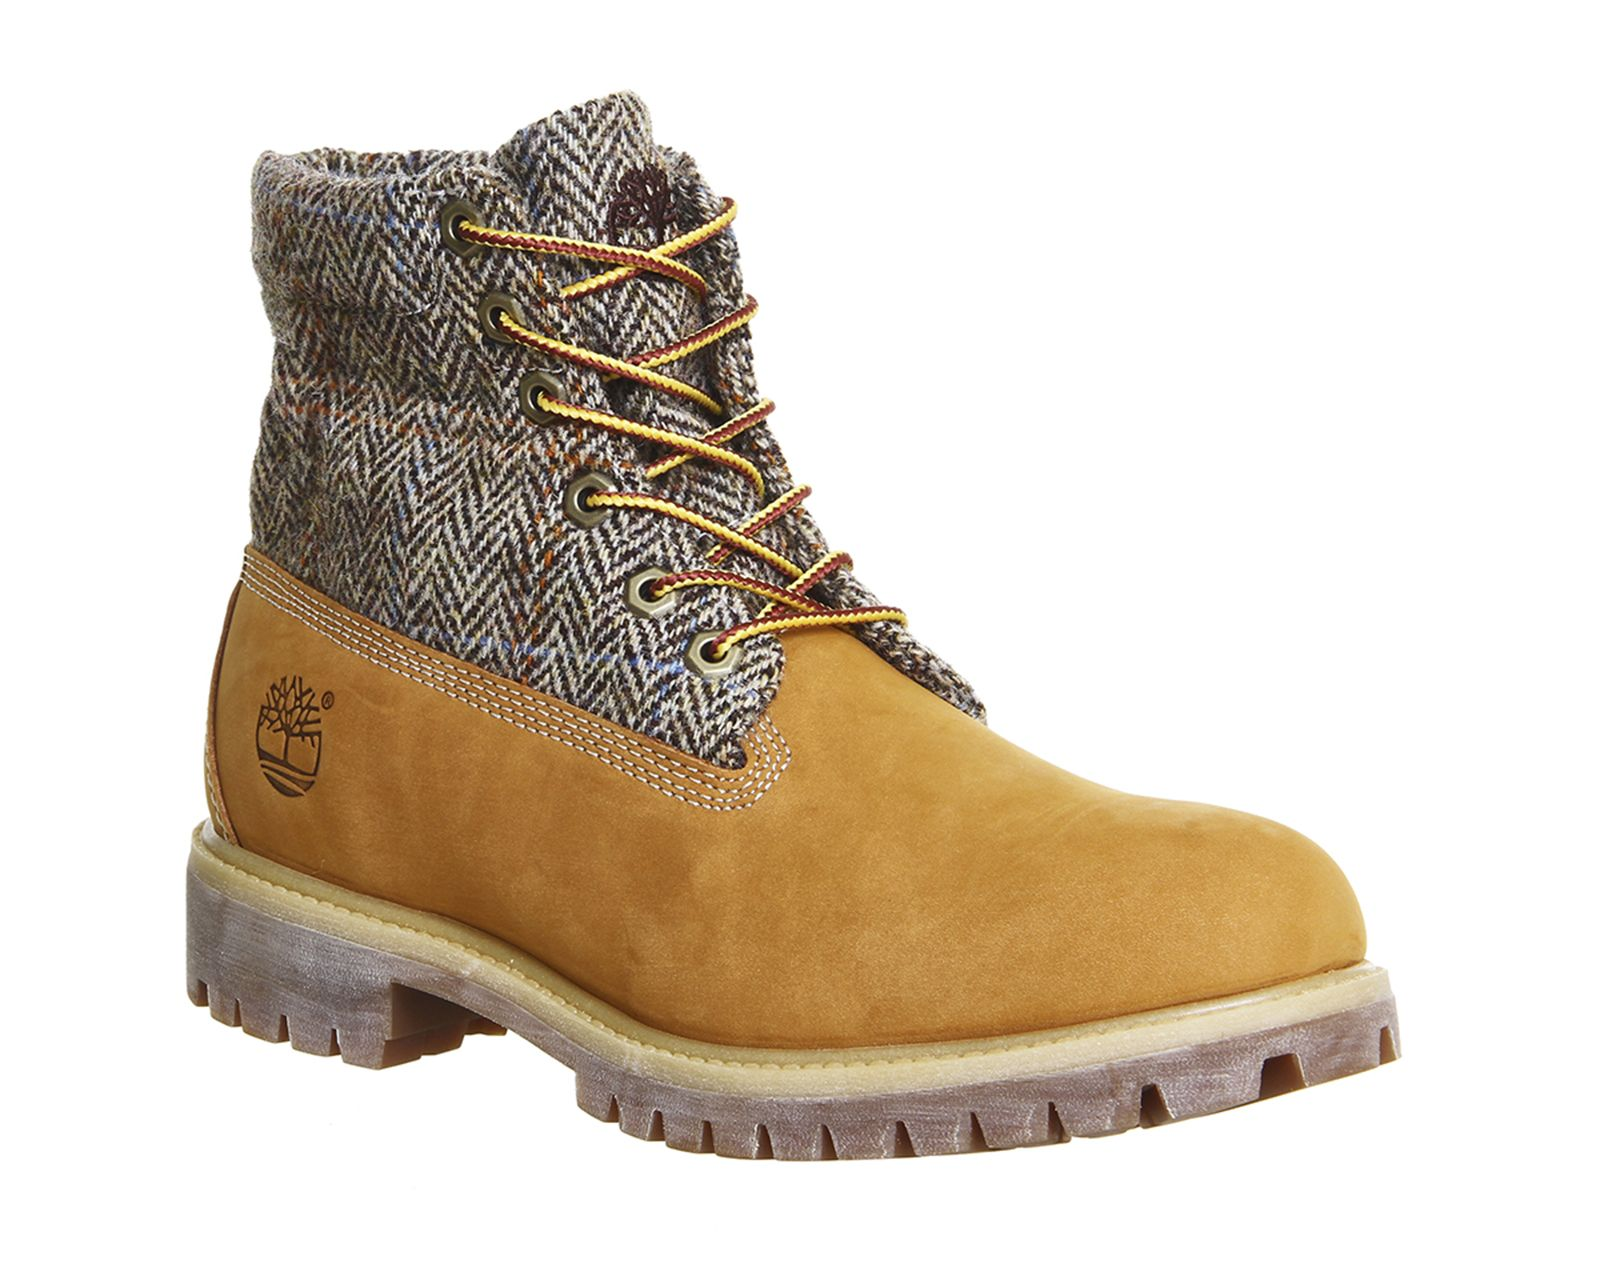 Timberland Icon Roll Top Boots Wheat Harris Tweed Leather - Boots